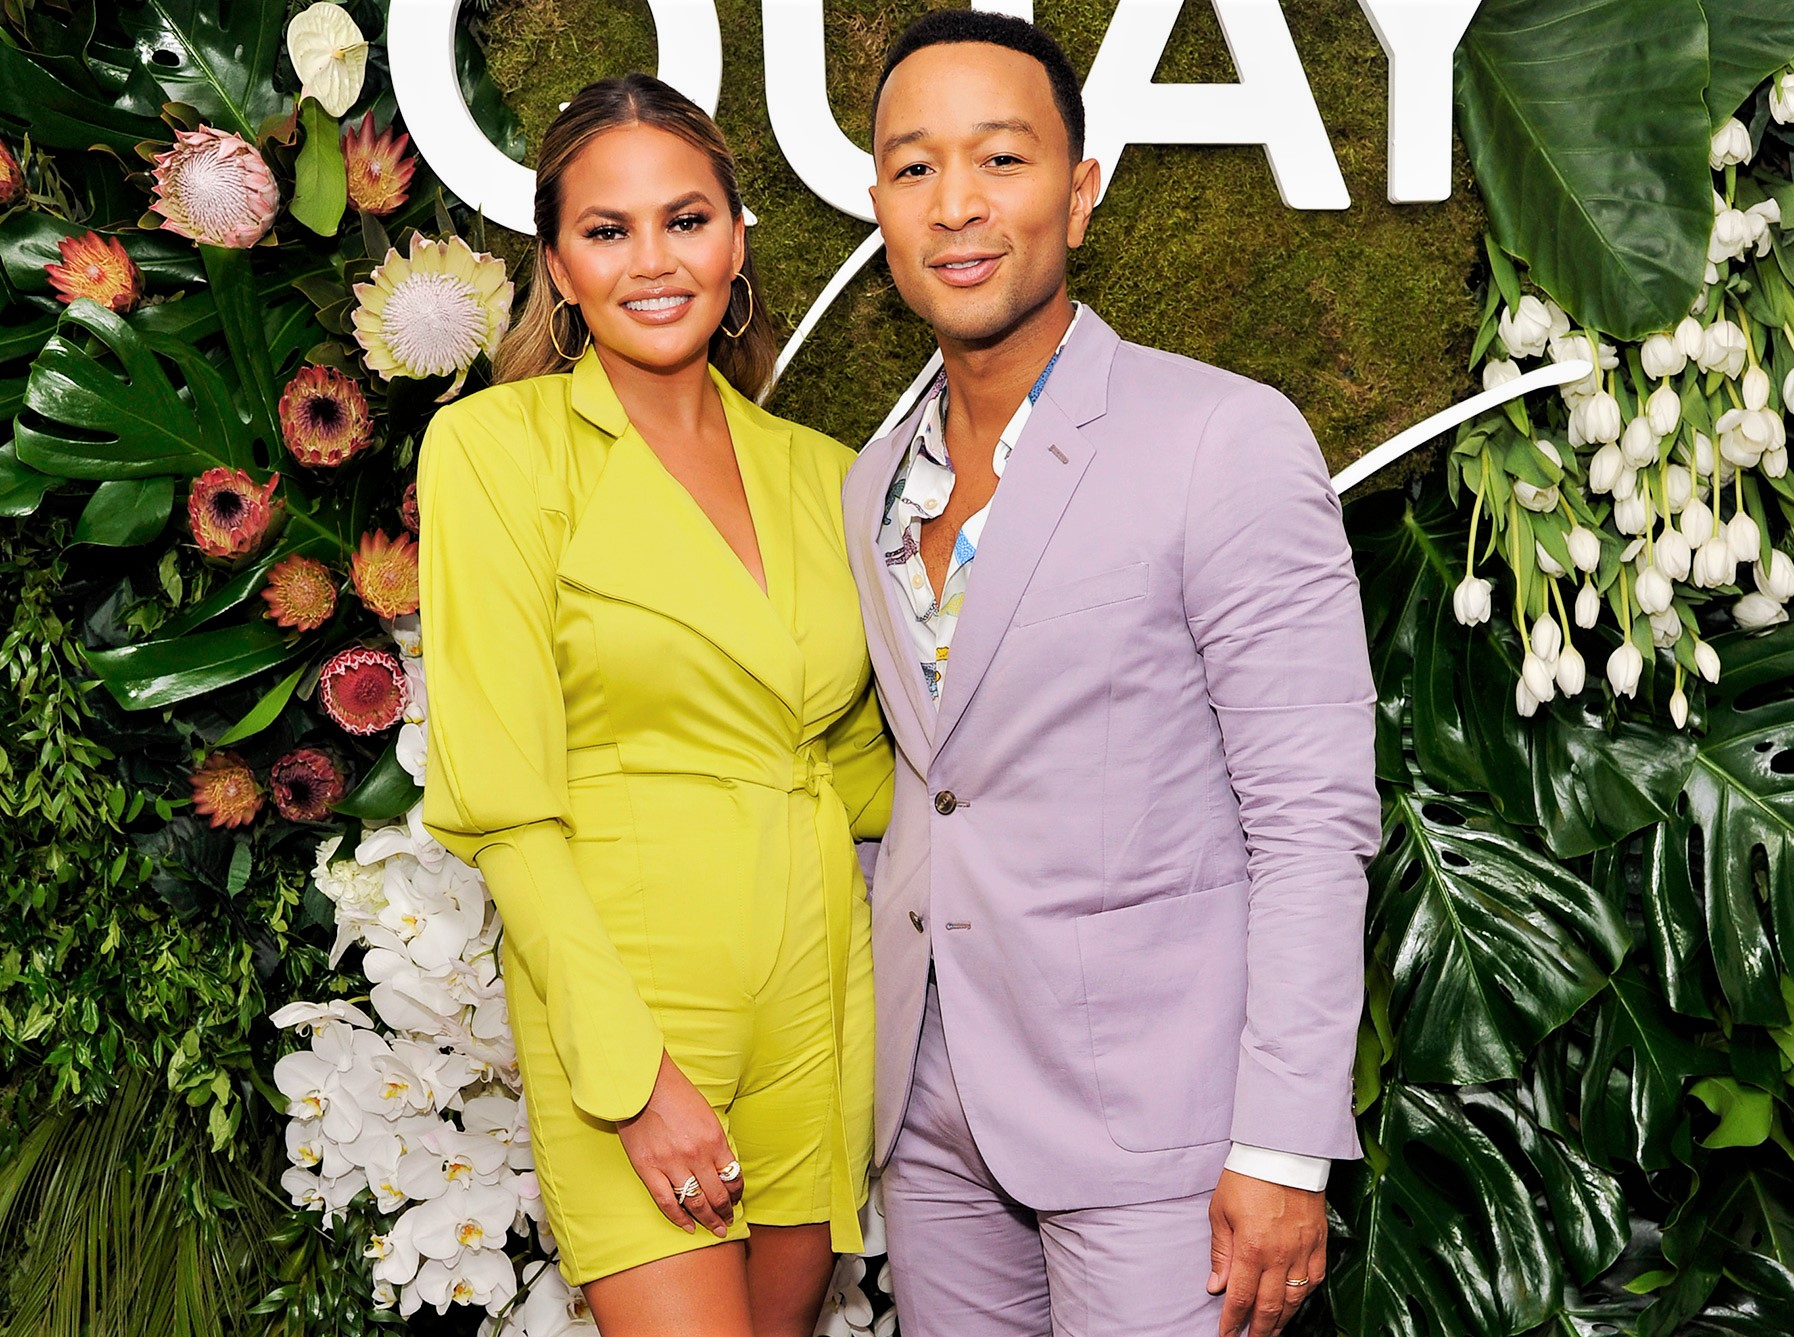 Quay x Chrissy Teigen and John Legend